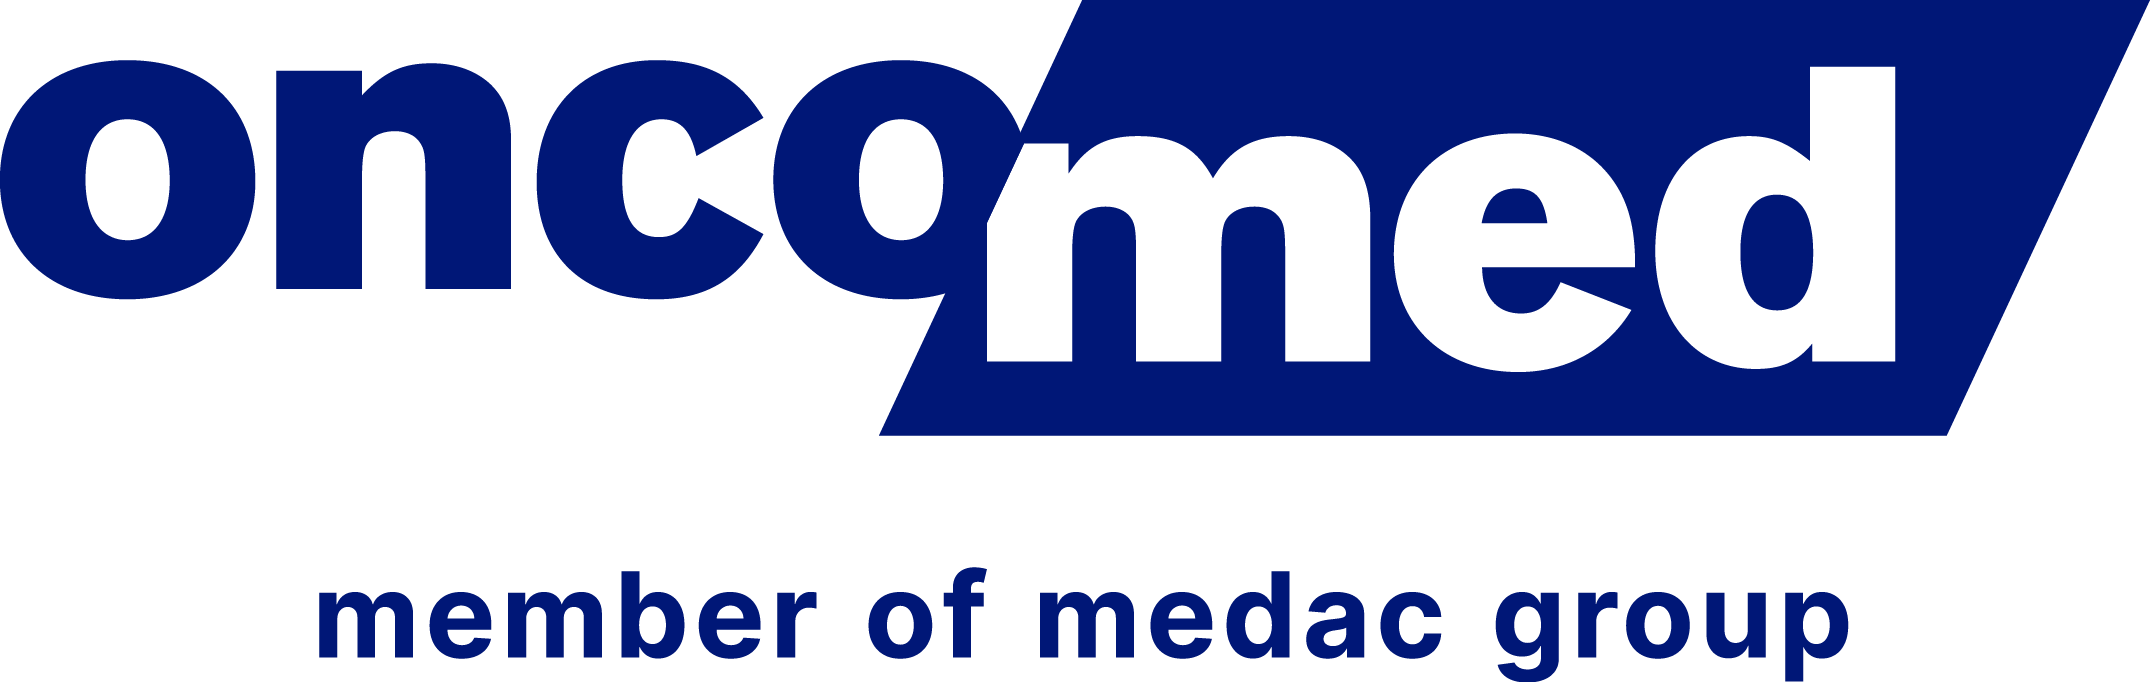 oncomed manufacturing a.s.